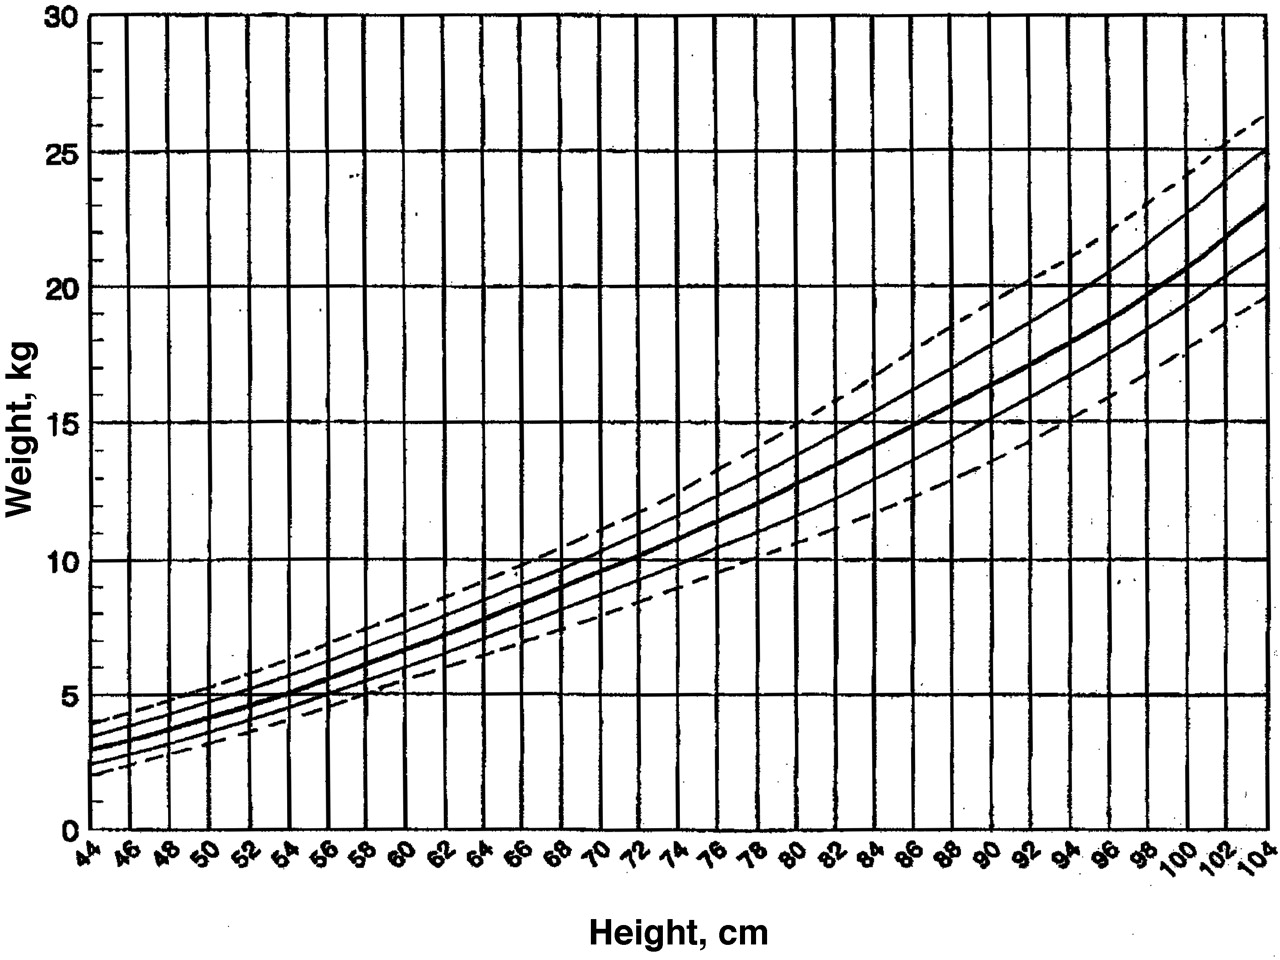 Female growth charts choice image chart design ideas charts a is for adelaide and height geenschuldenfo choice image nvjuhfo Images